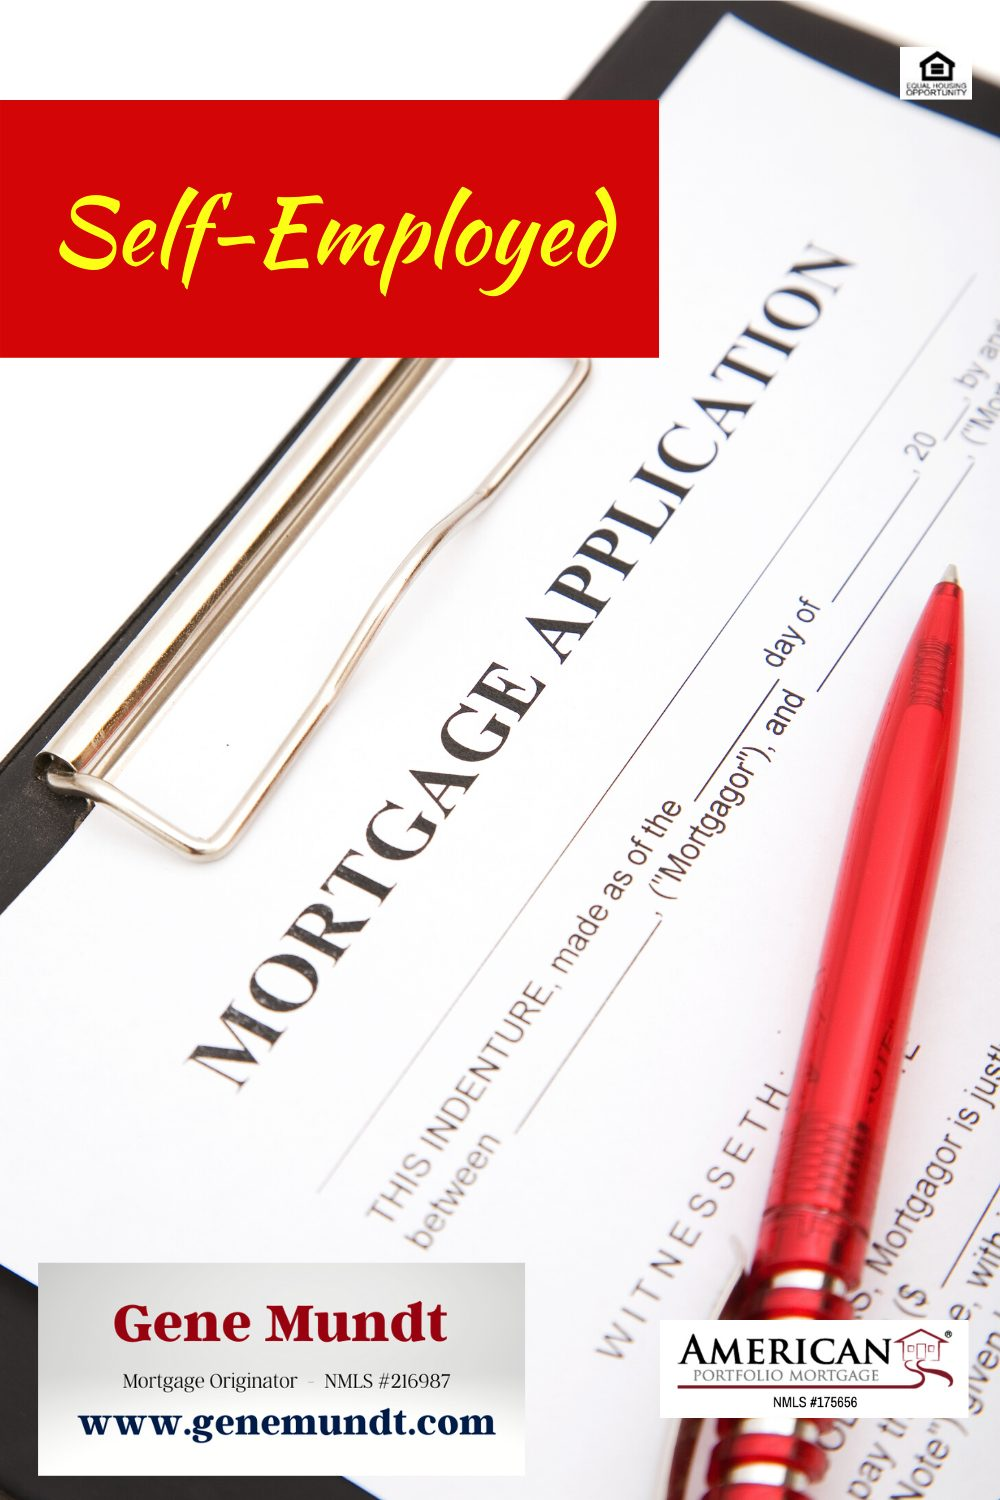 Applying for a mortgage while self-employed